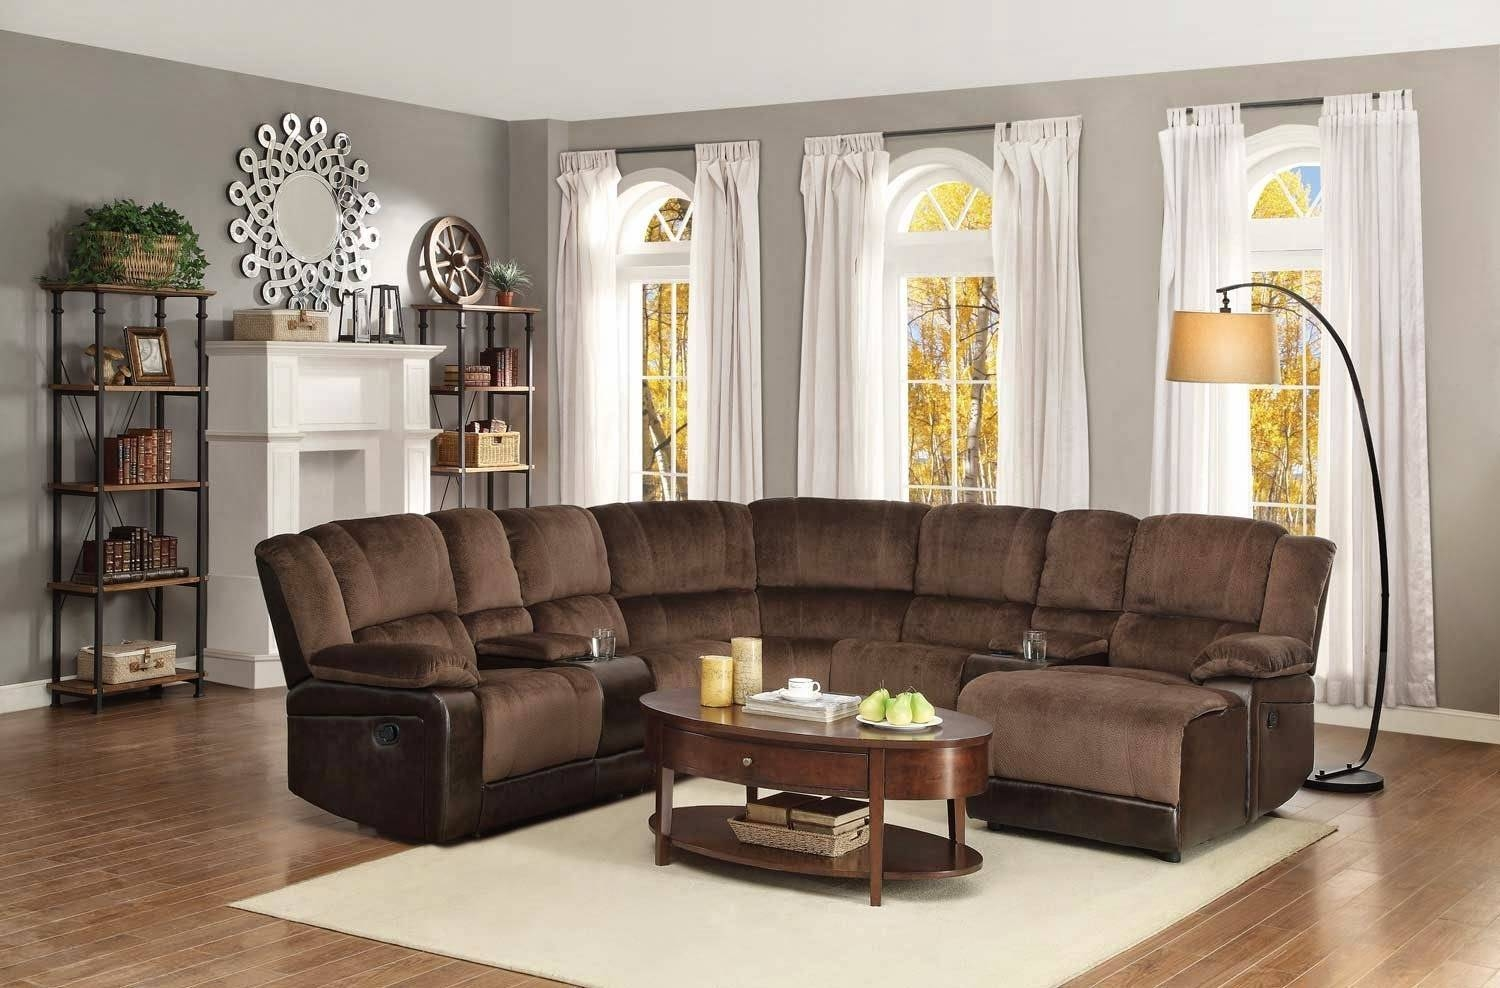 Appealing Curved Sectional Sofa With Recliner 26 With Additional in Jane Bi Sectional Sofa (Image 1 of 30)